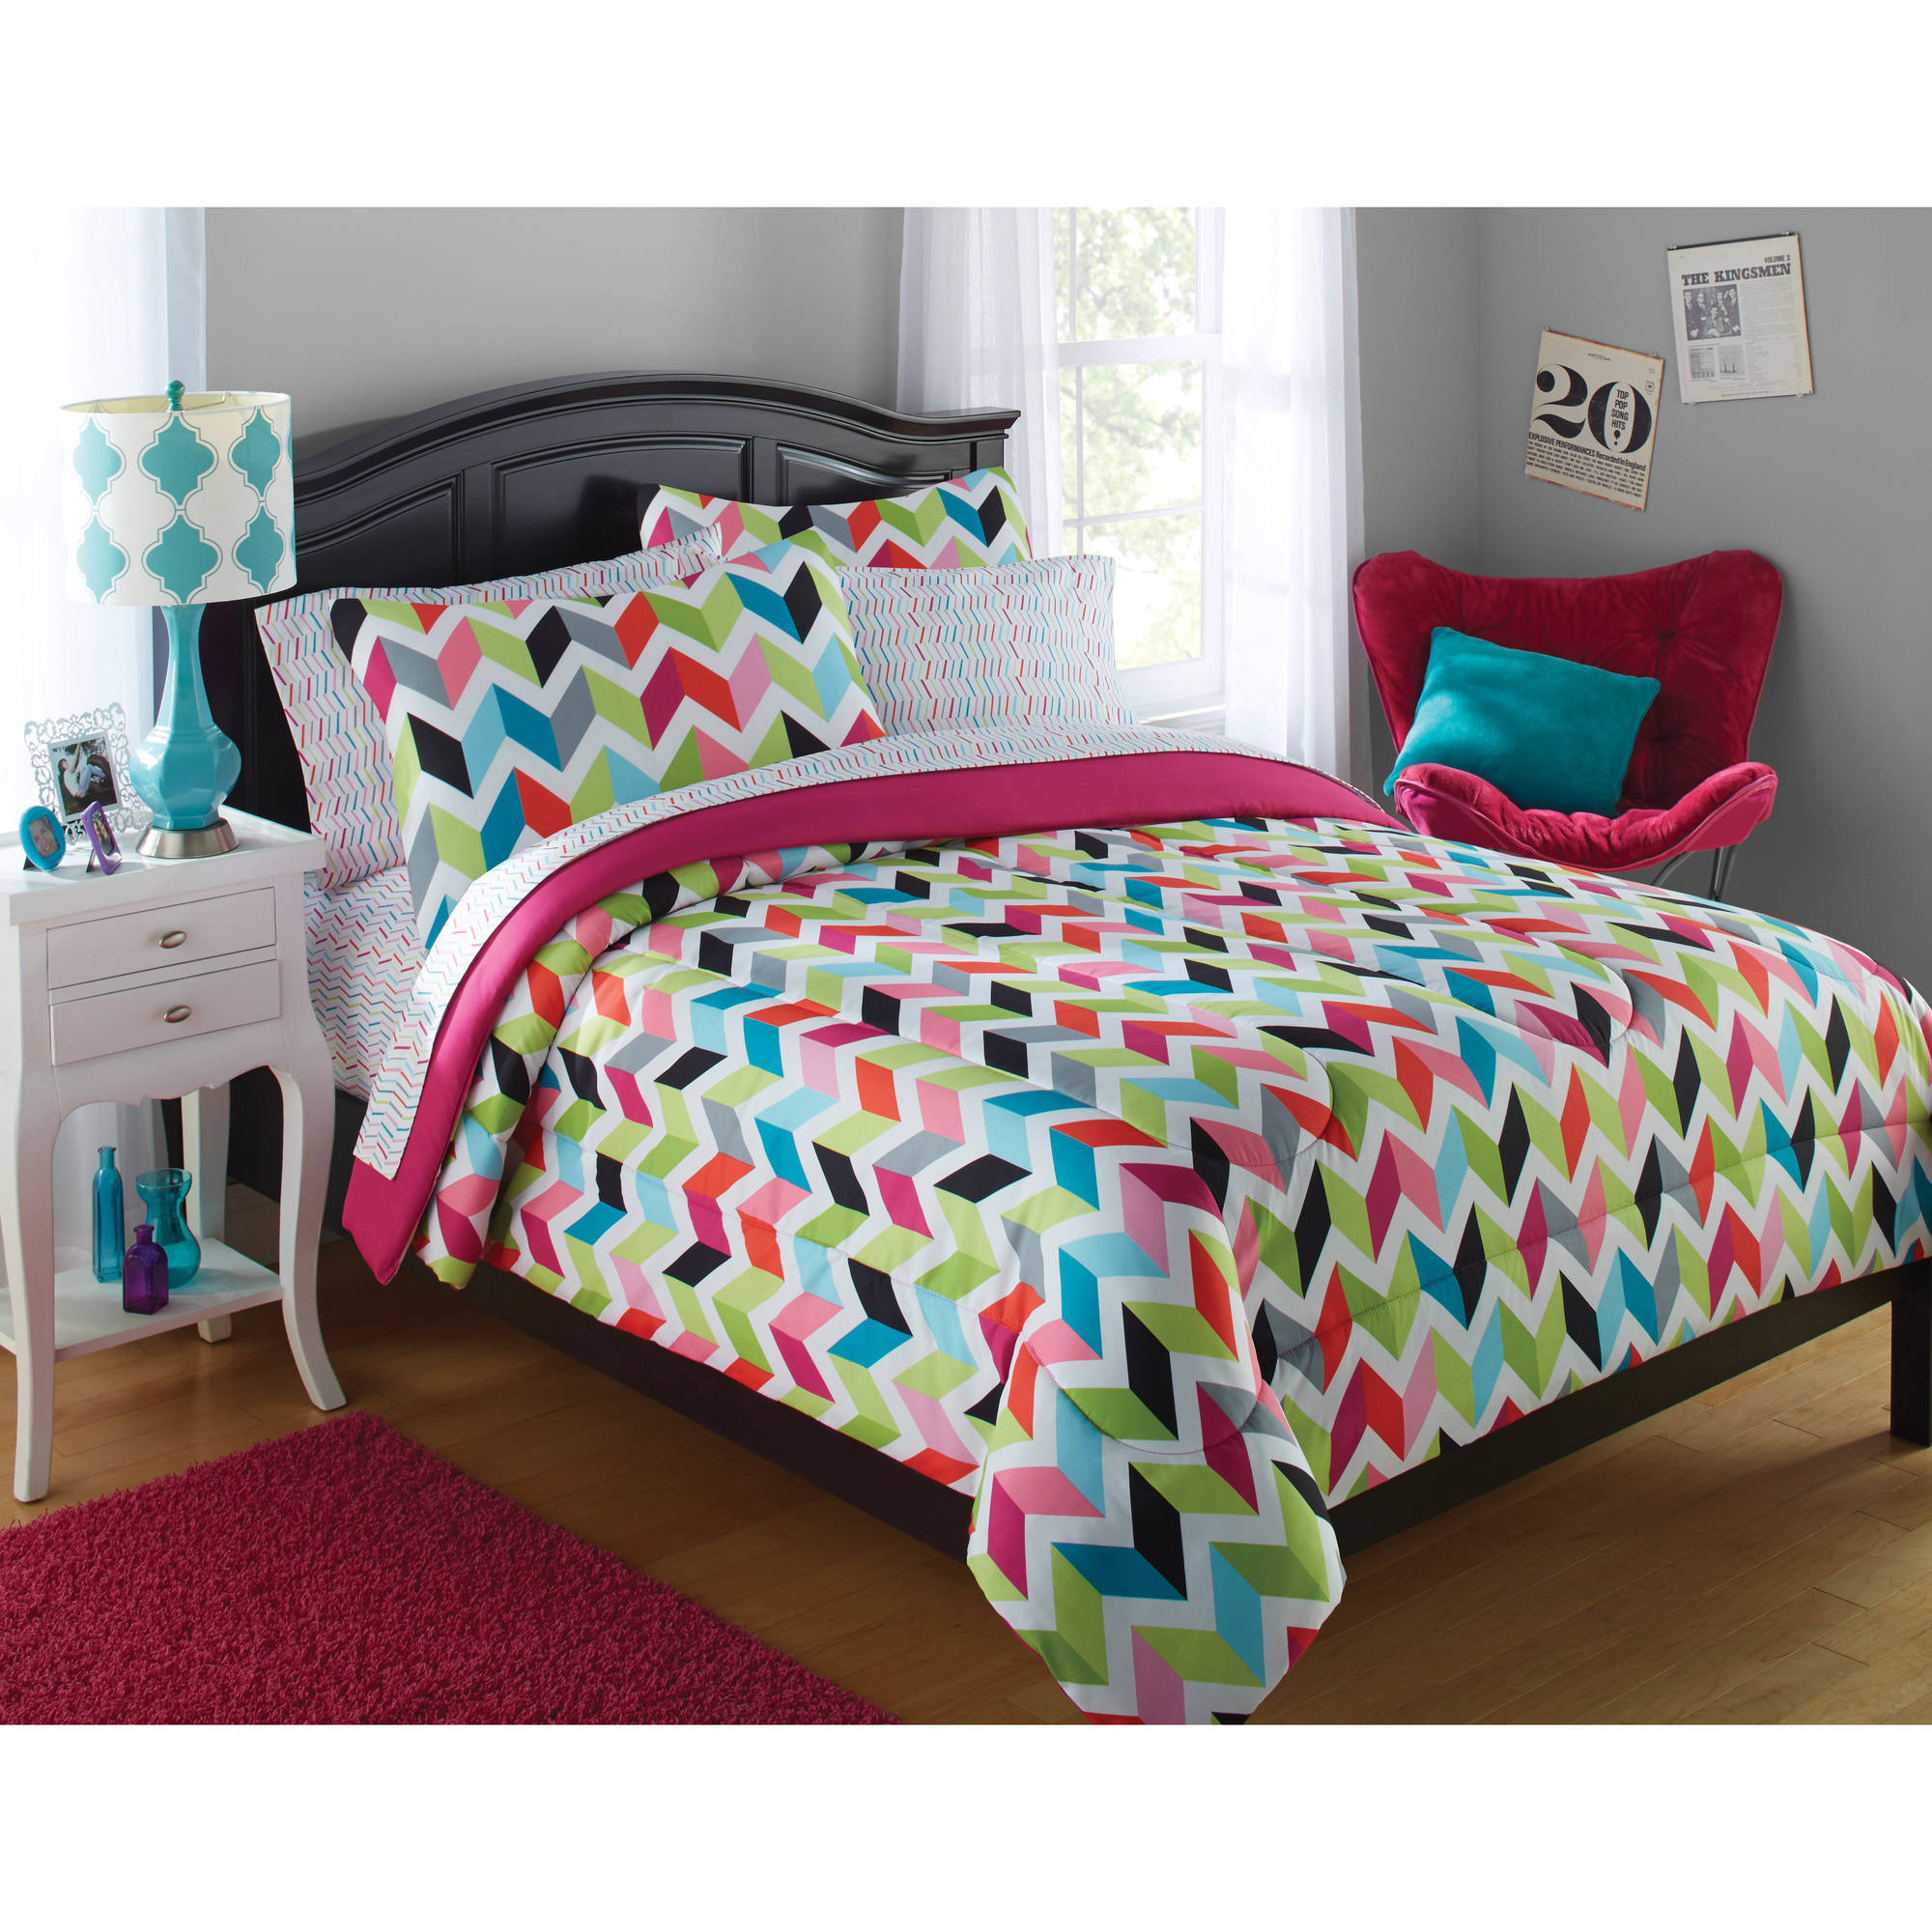 Bed sheets for teenagers - Bed Sheets For Teenagers 28